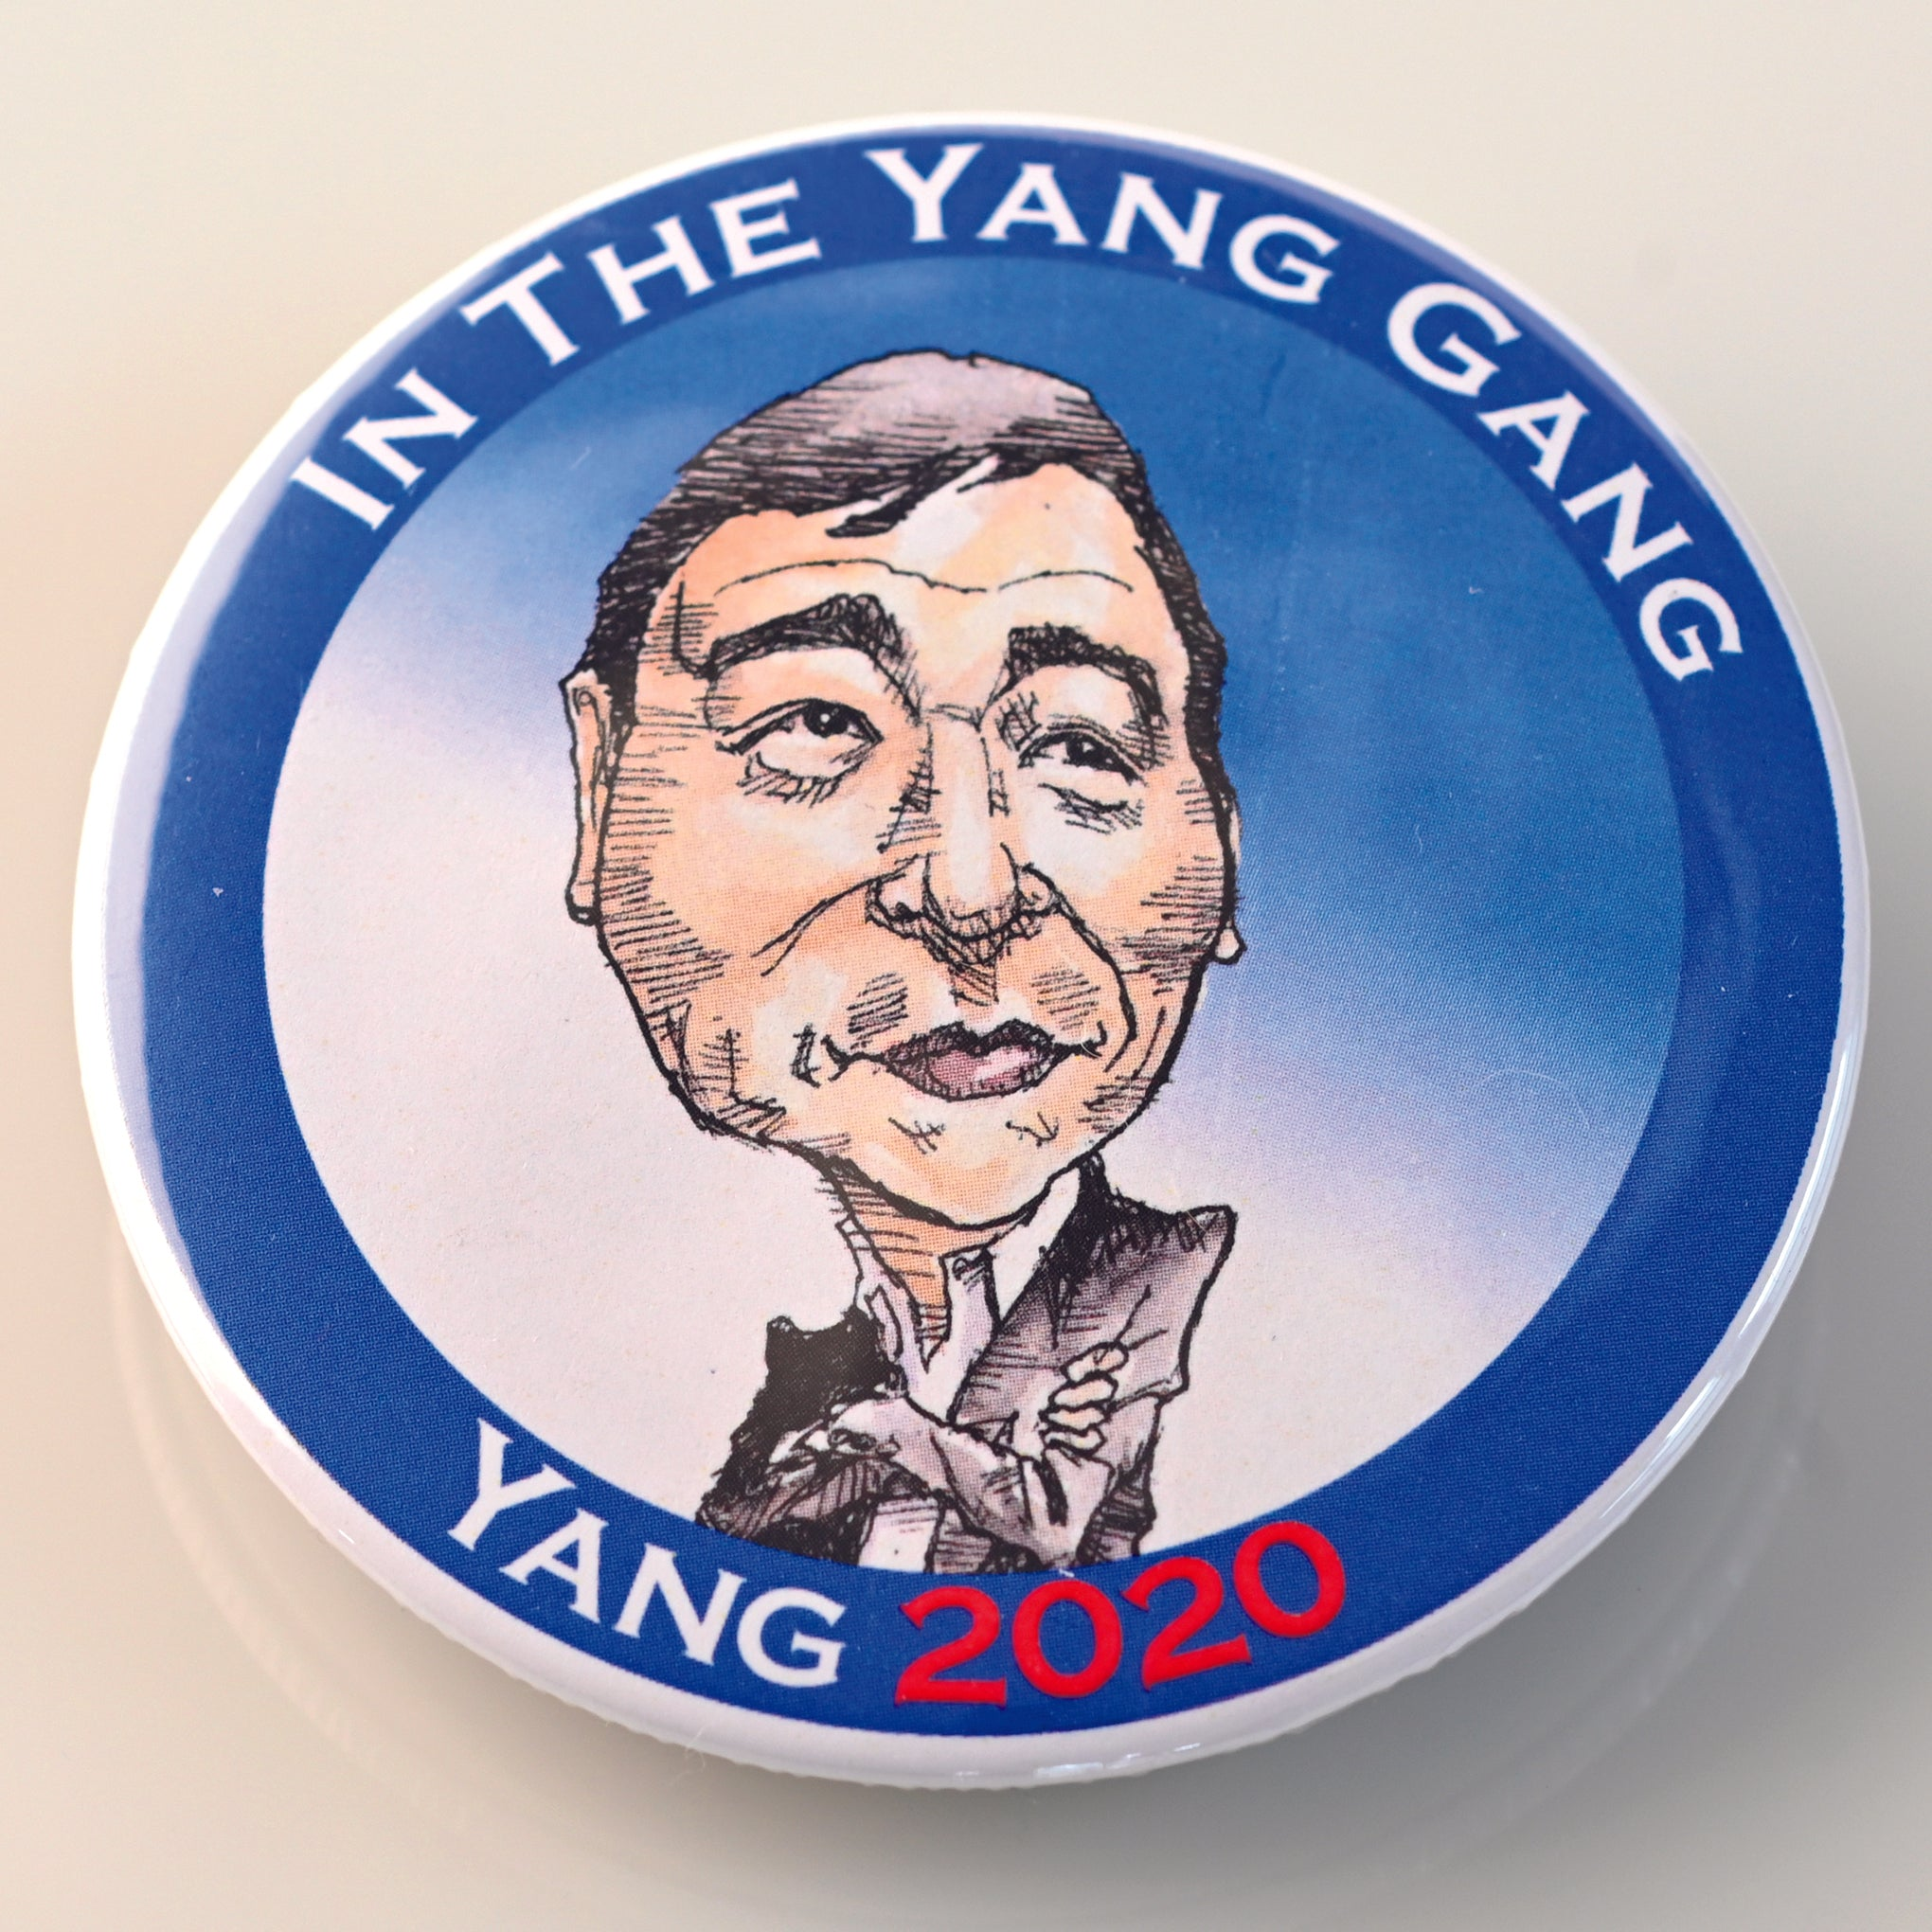 ANDREW YANG BUTTON - PLAYING POLITICS